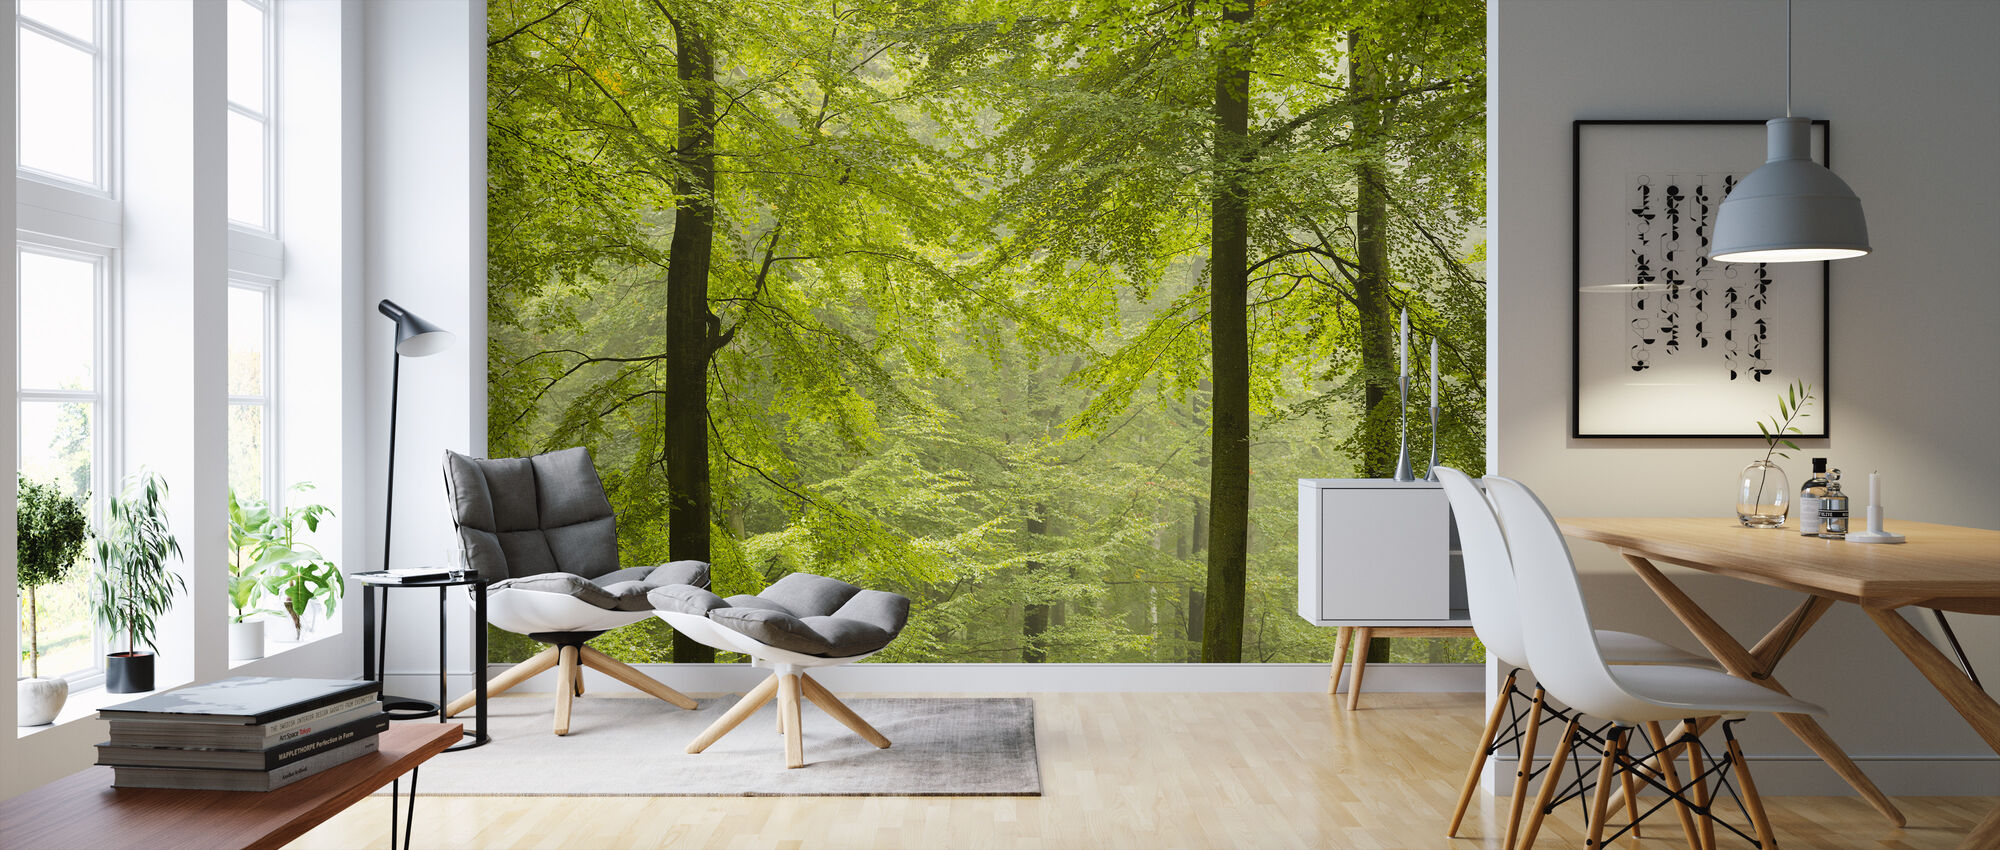 Beech Forest in Torup, Sweden I, Europe - Wallpaper - Living Room